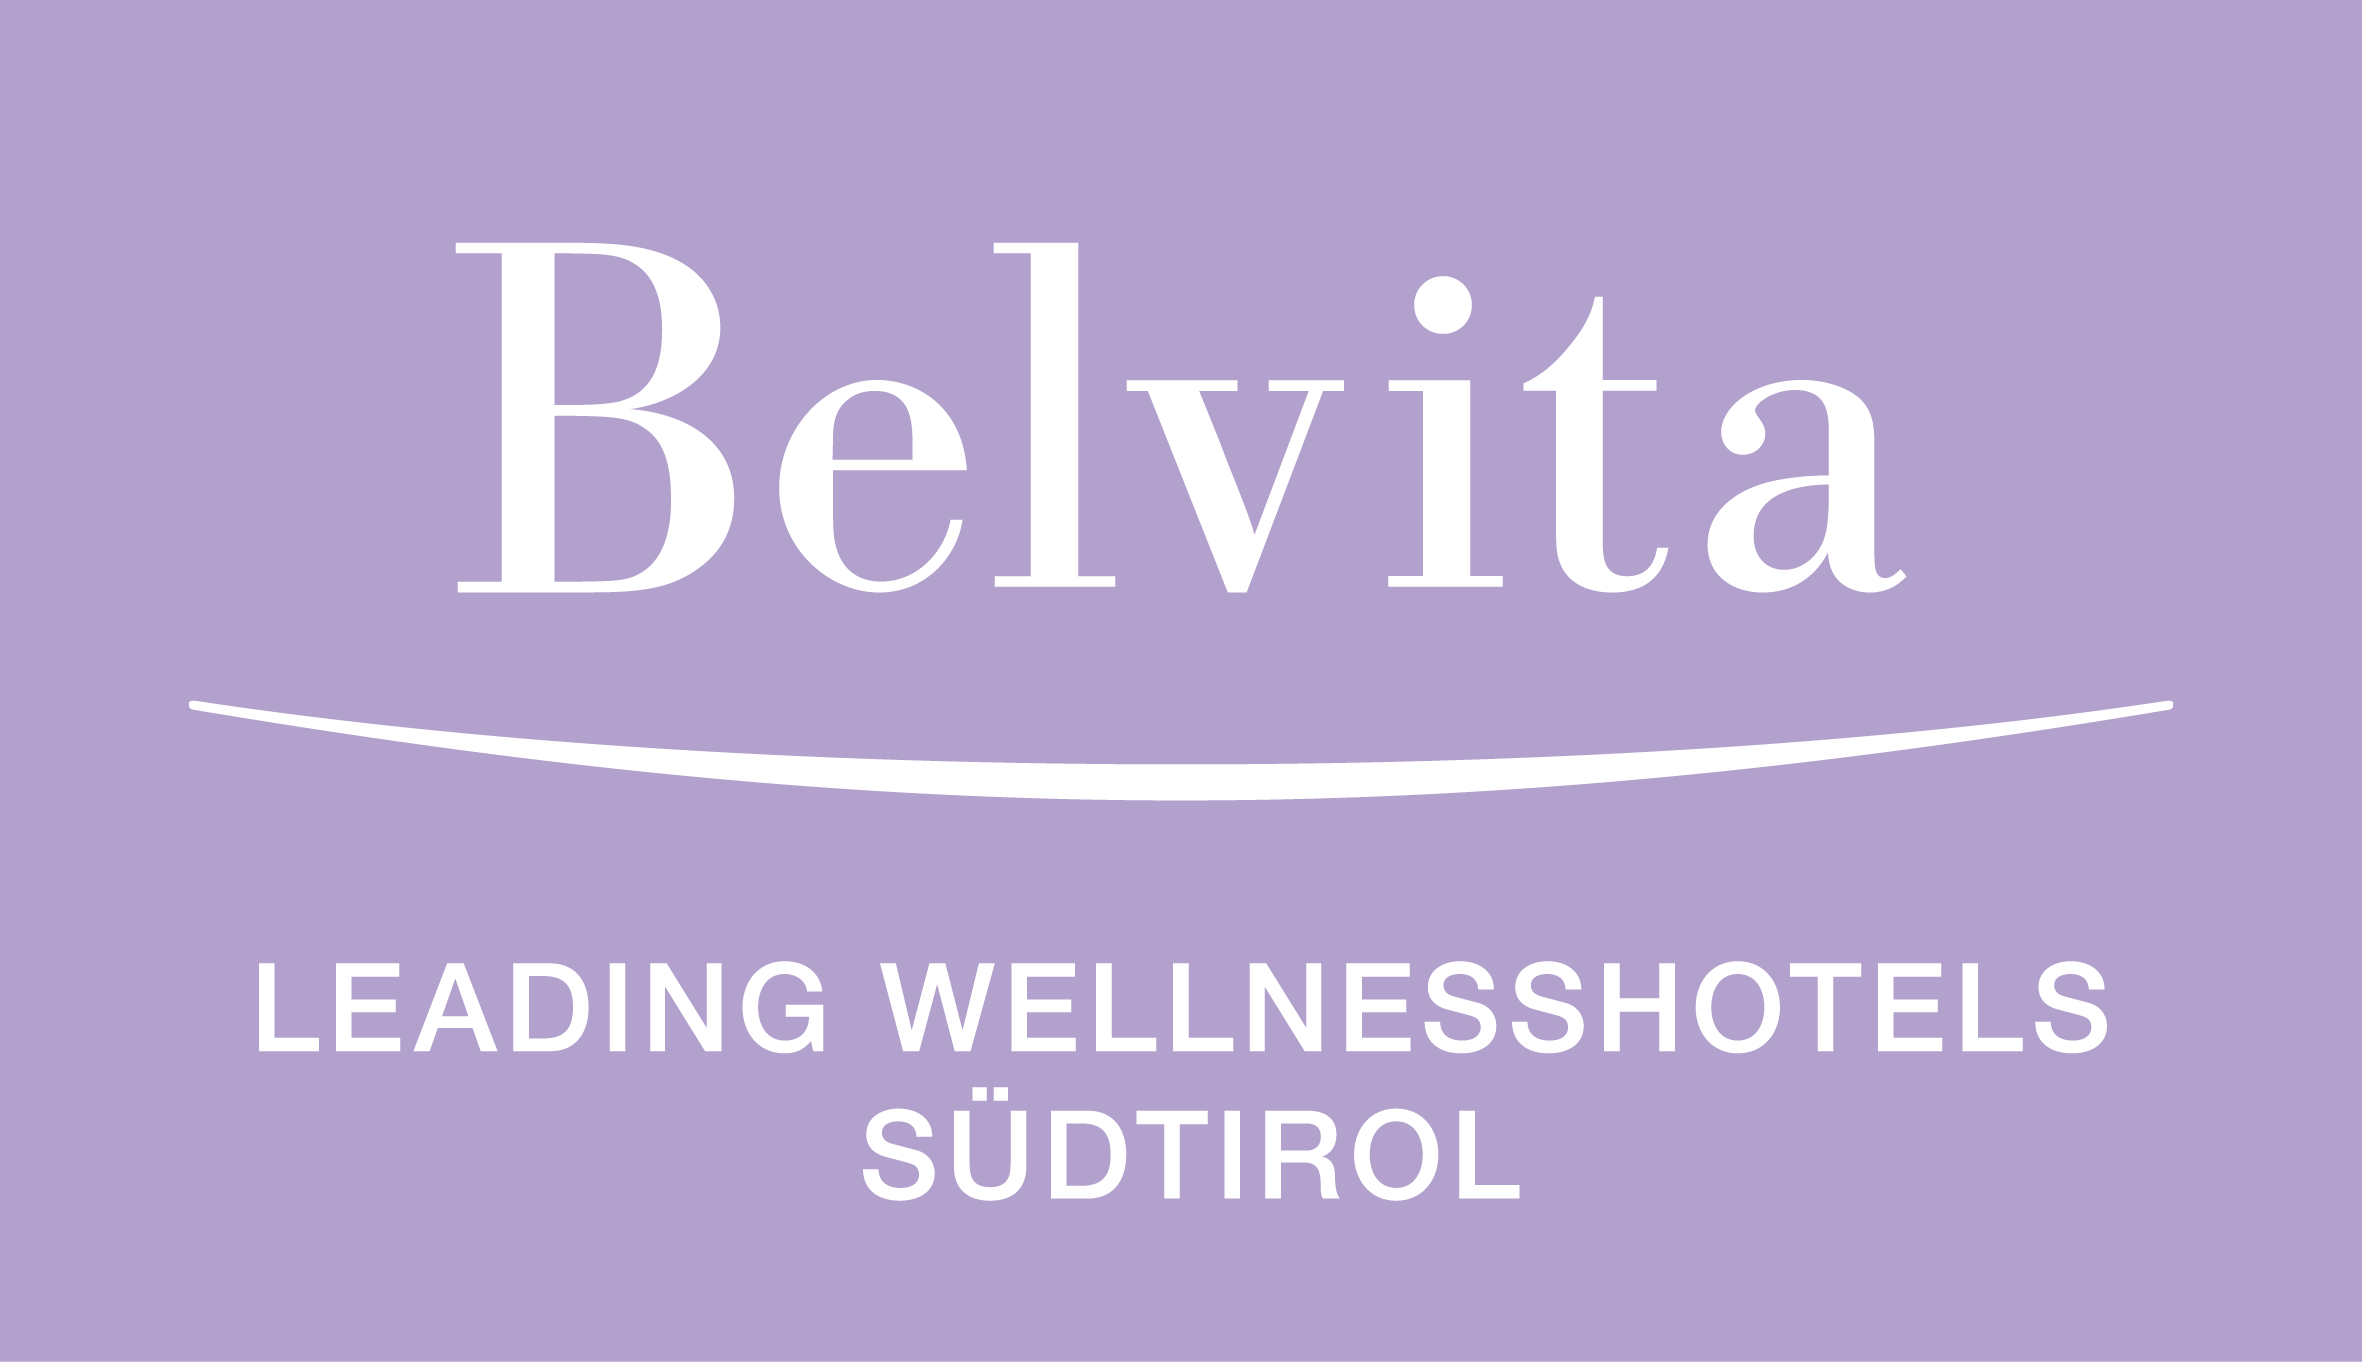 Belvita Leading Wellnesshotels Alto Adige